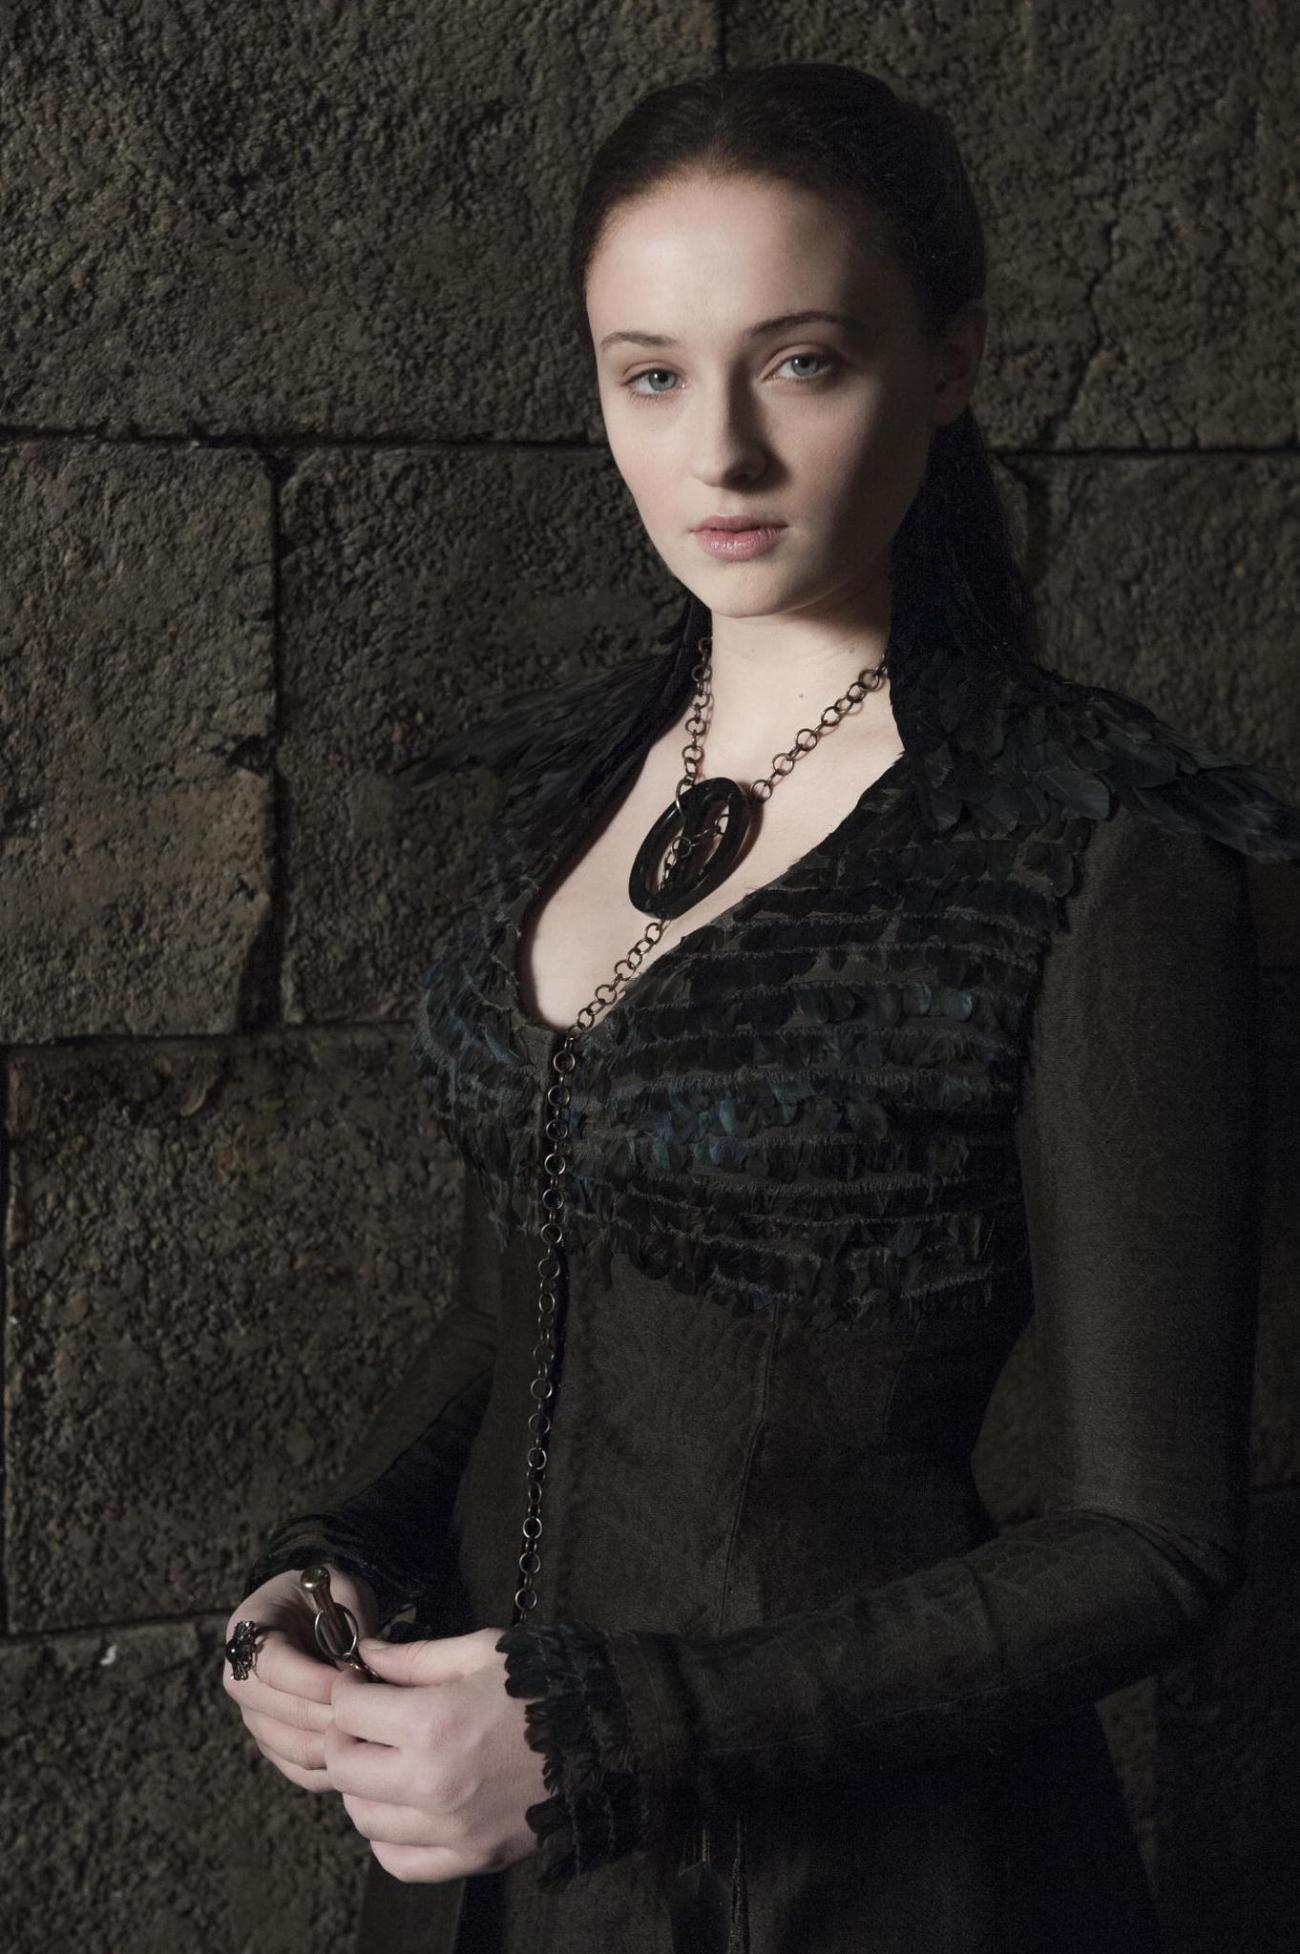 120638-Sansa-Stark-hot-Maleficent-mem-BmL4